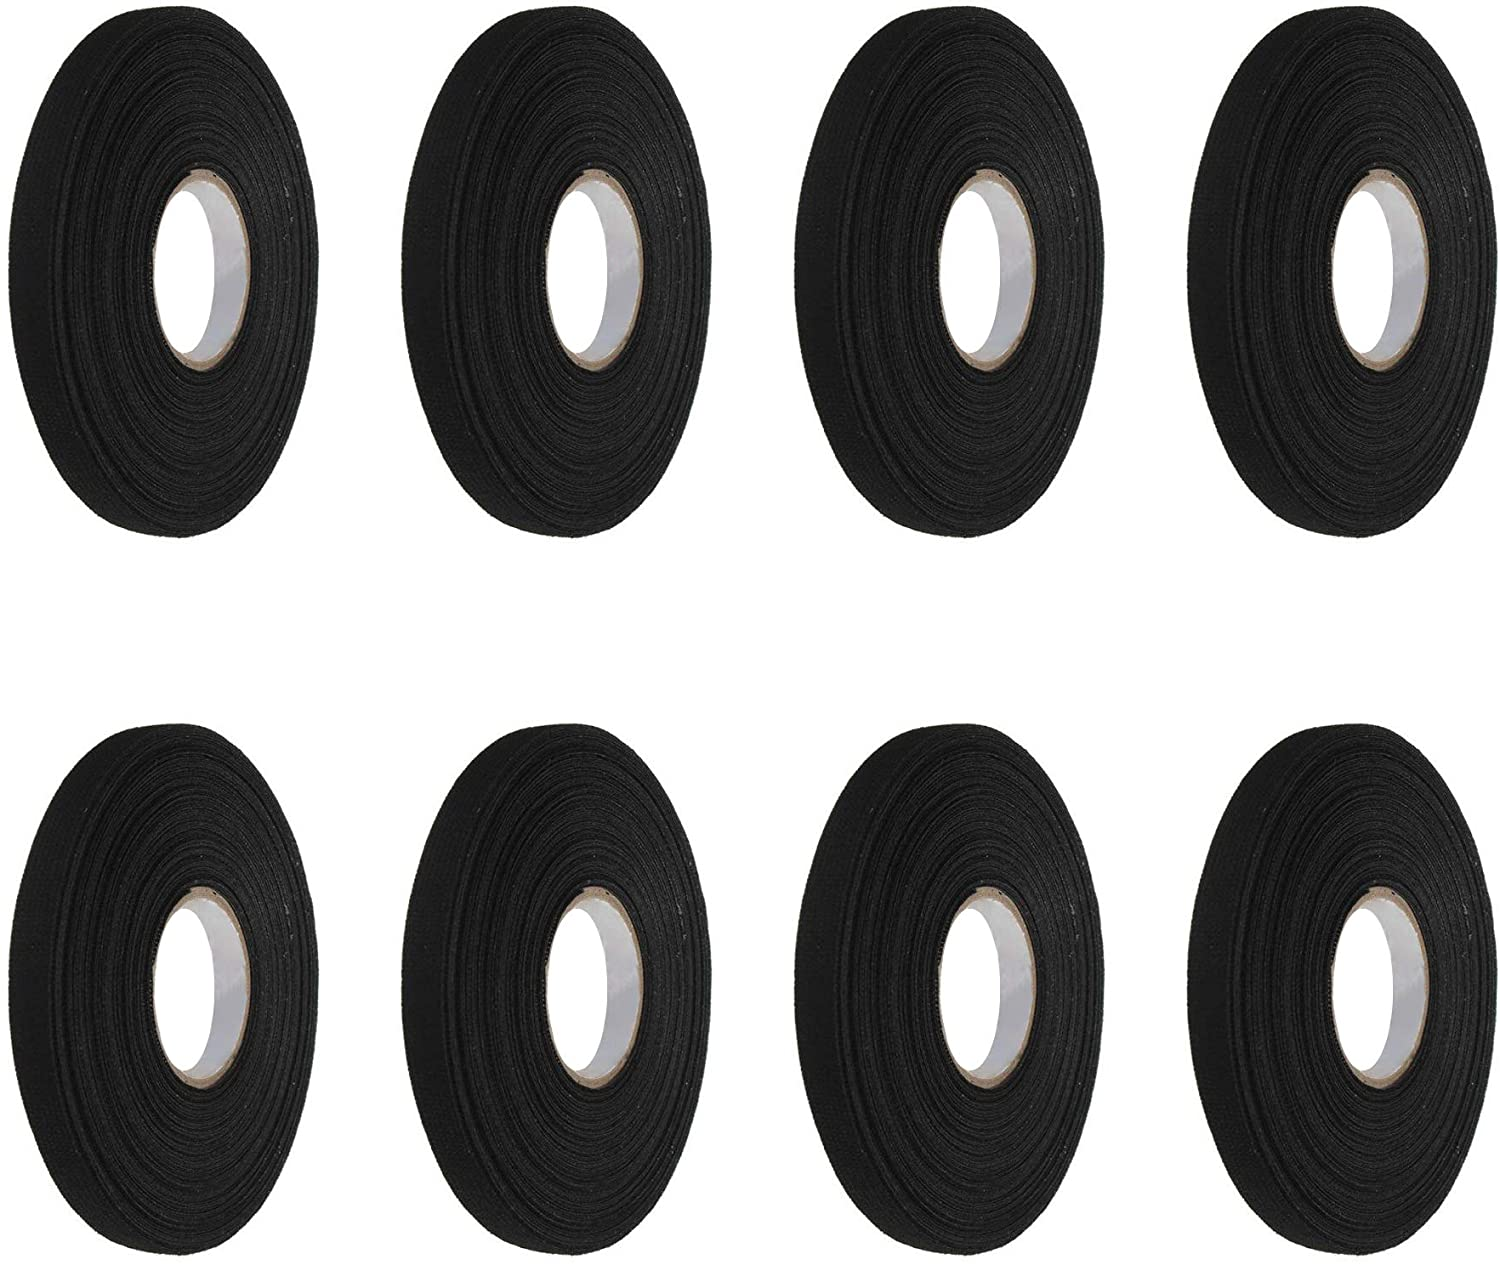 MOTZU 8 Rolls Adhesive Cloth Fabric Harness Tape for Automotive Electrical Looms Cars, Black